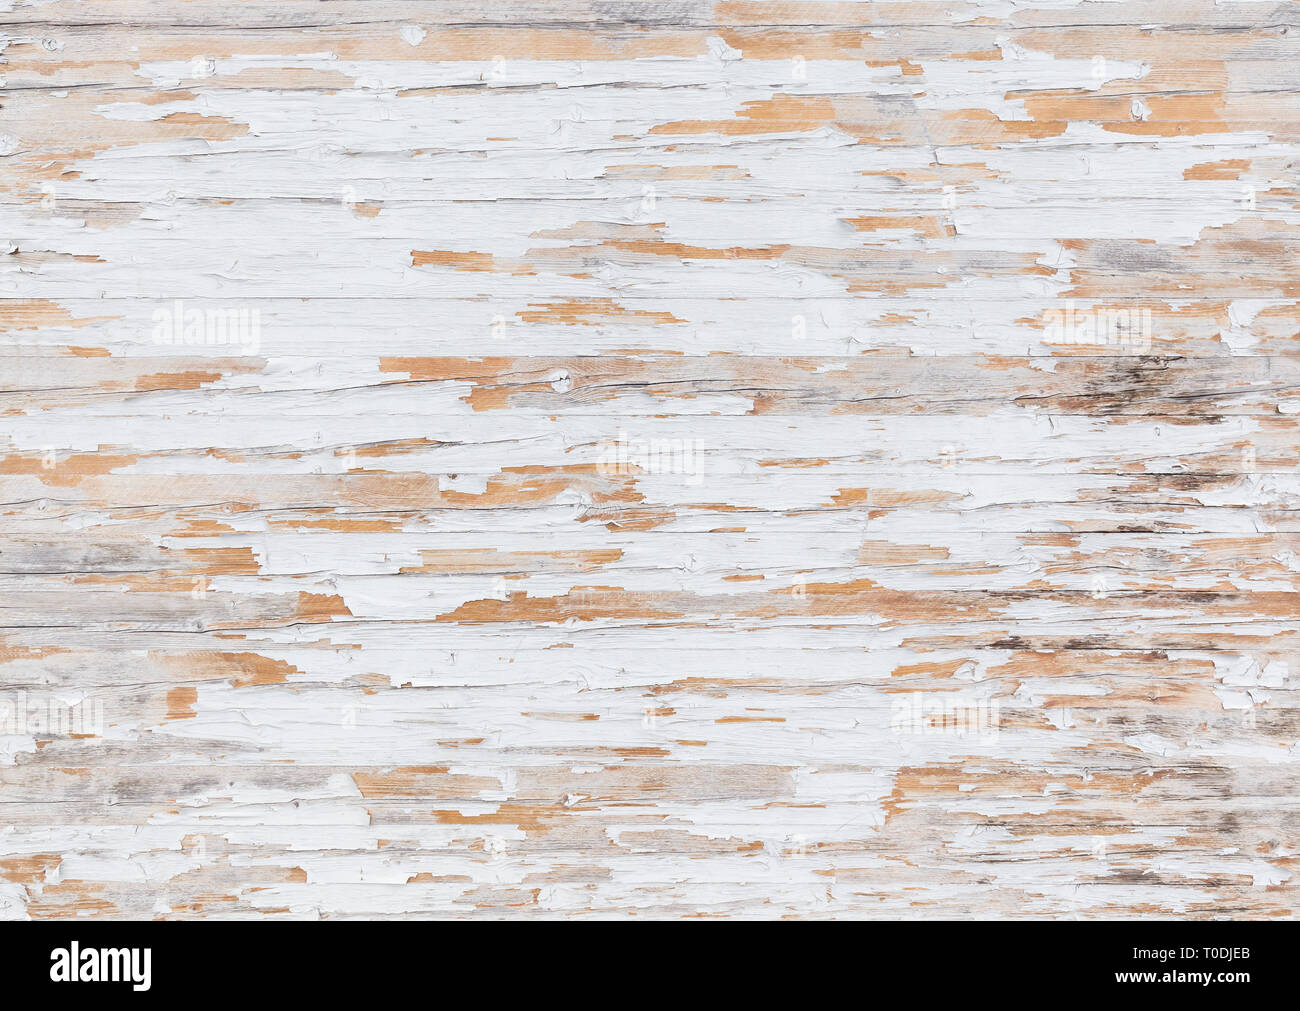 High resolution full frame background of a weathered and faded wooden wall or wood paneling, white paint mostly peeled off. Stock Photo